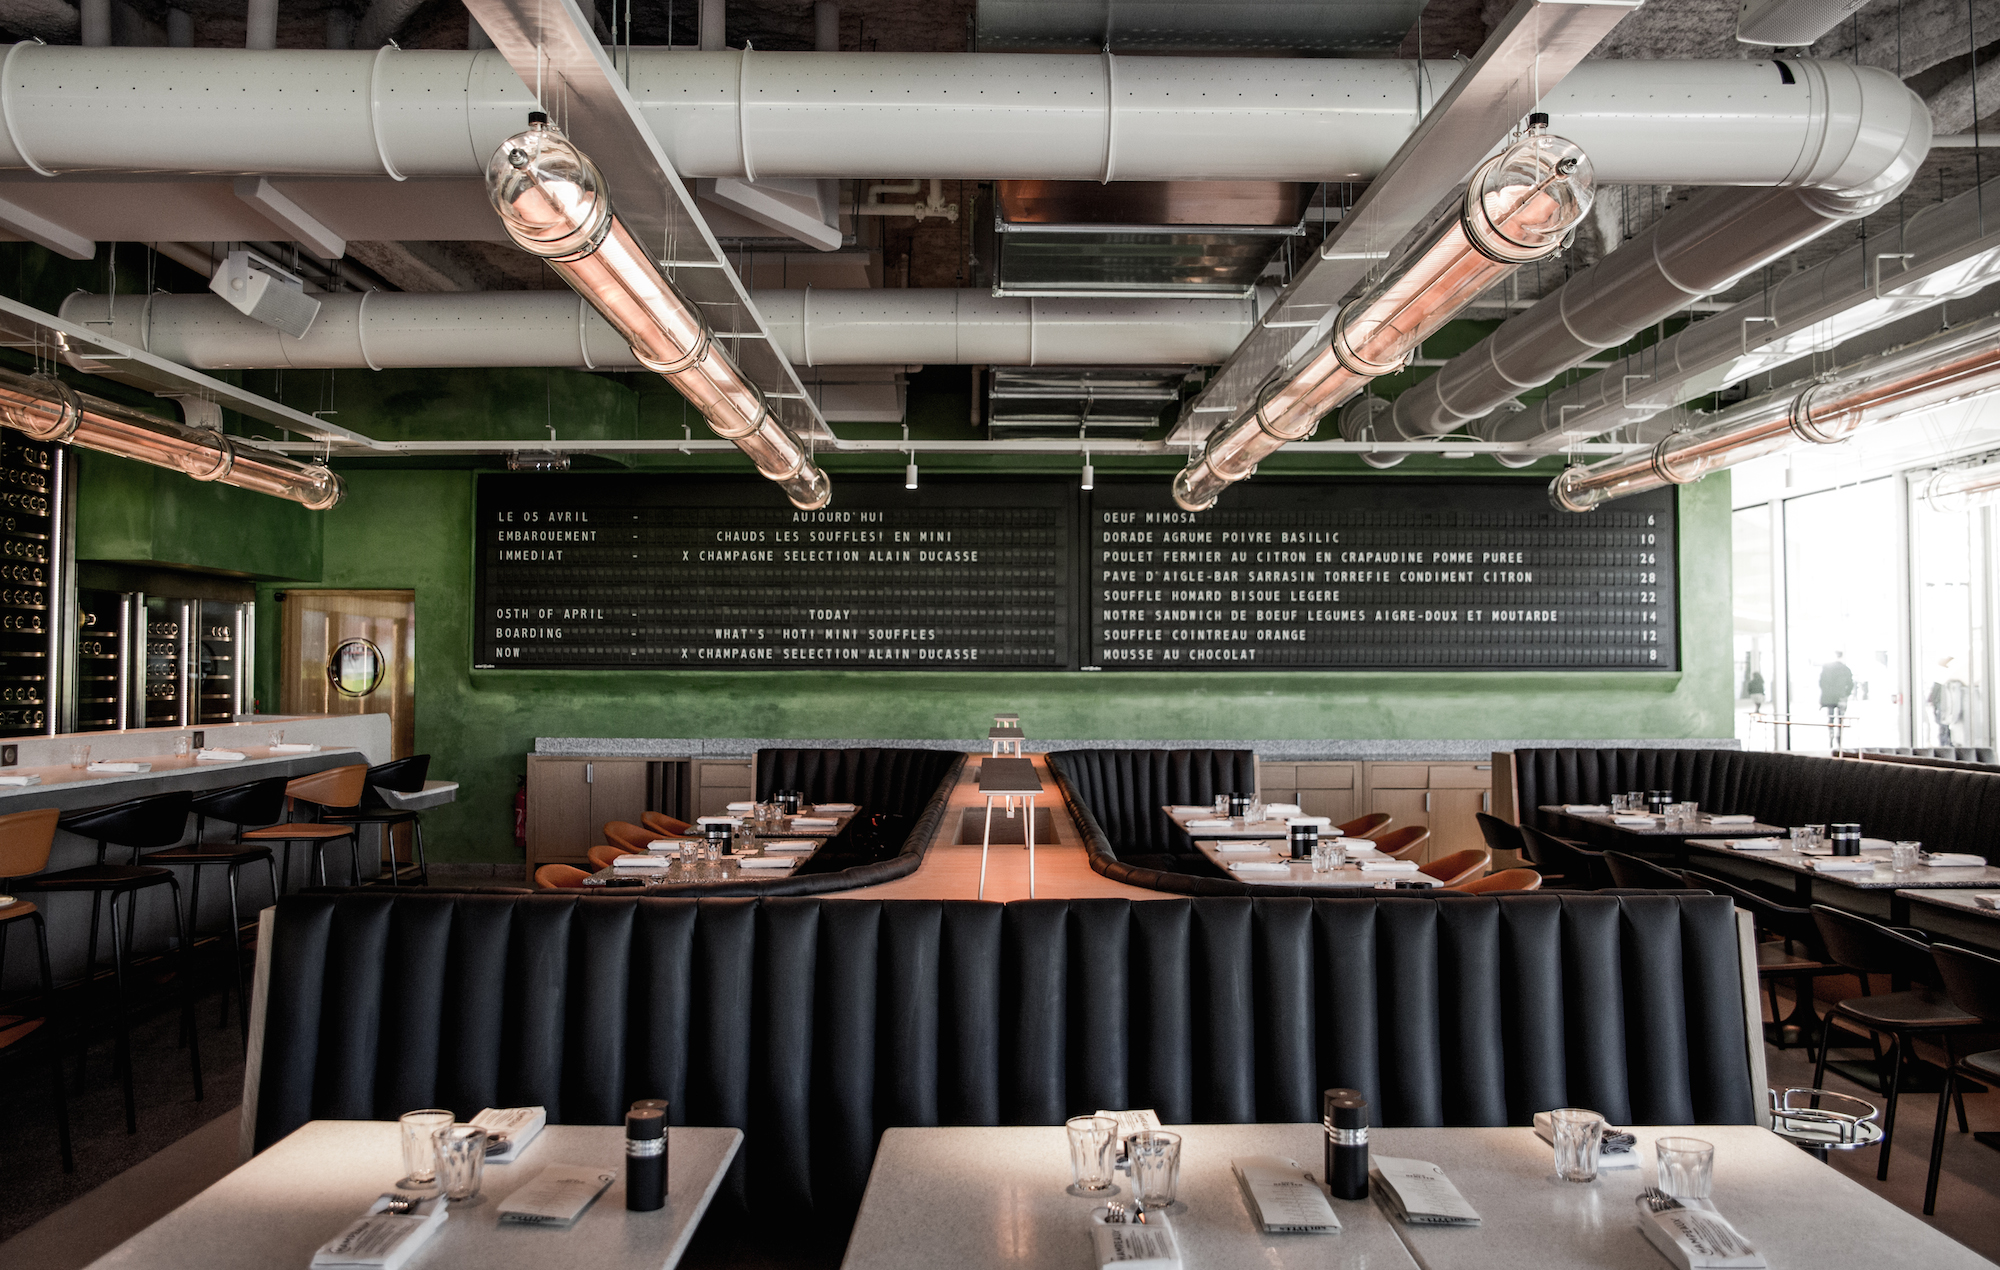 Champeaux restaurant is the place to go to eat souffle in Paris and it comes with sleek updated diner-style interiors with a green wall and fluted leather banquettes.